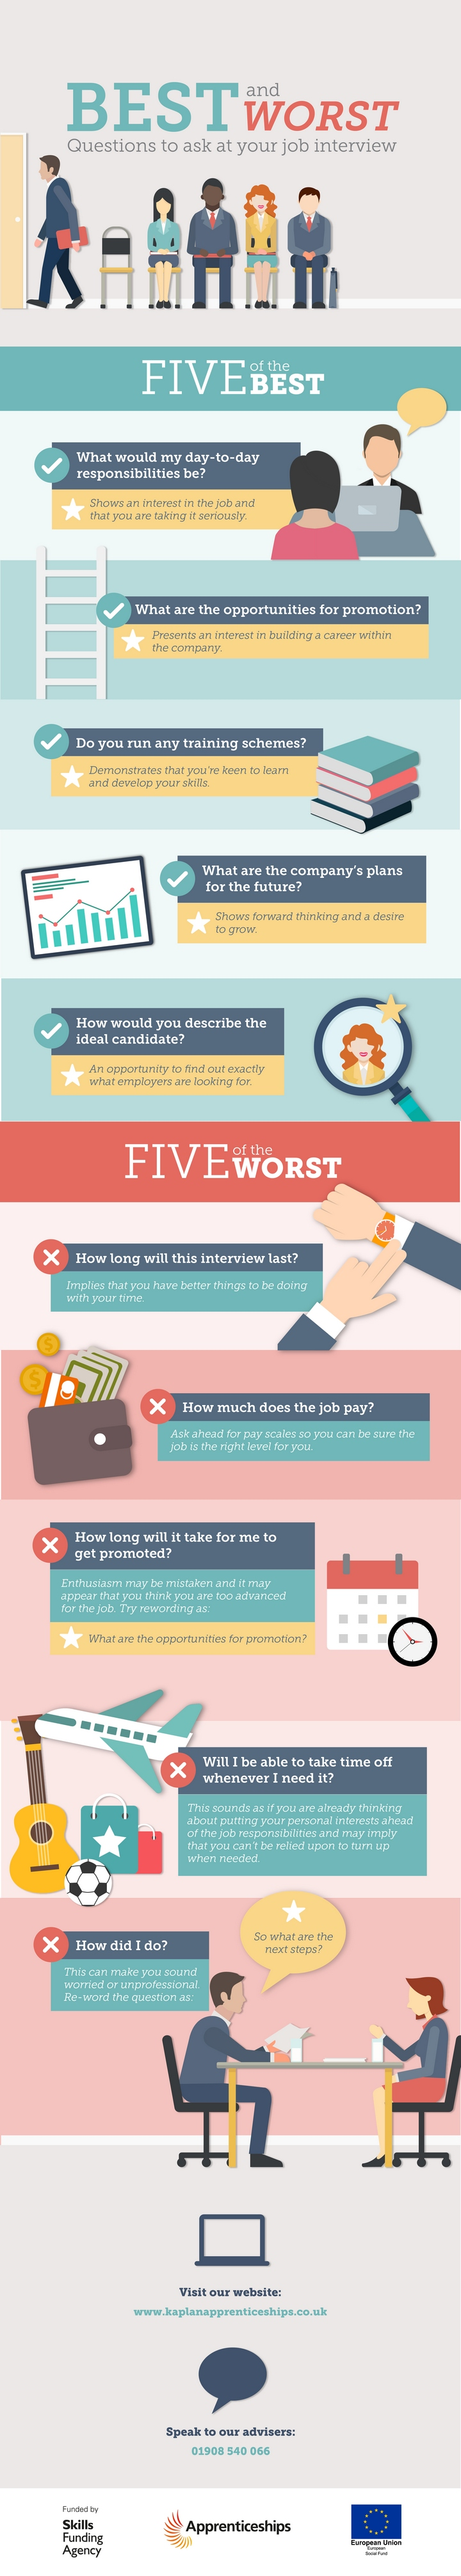 Best and worst interview questions infographic